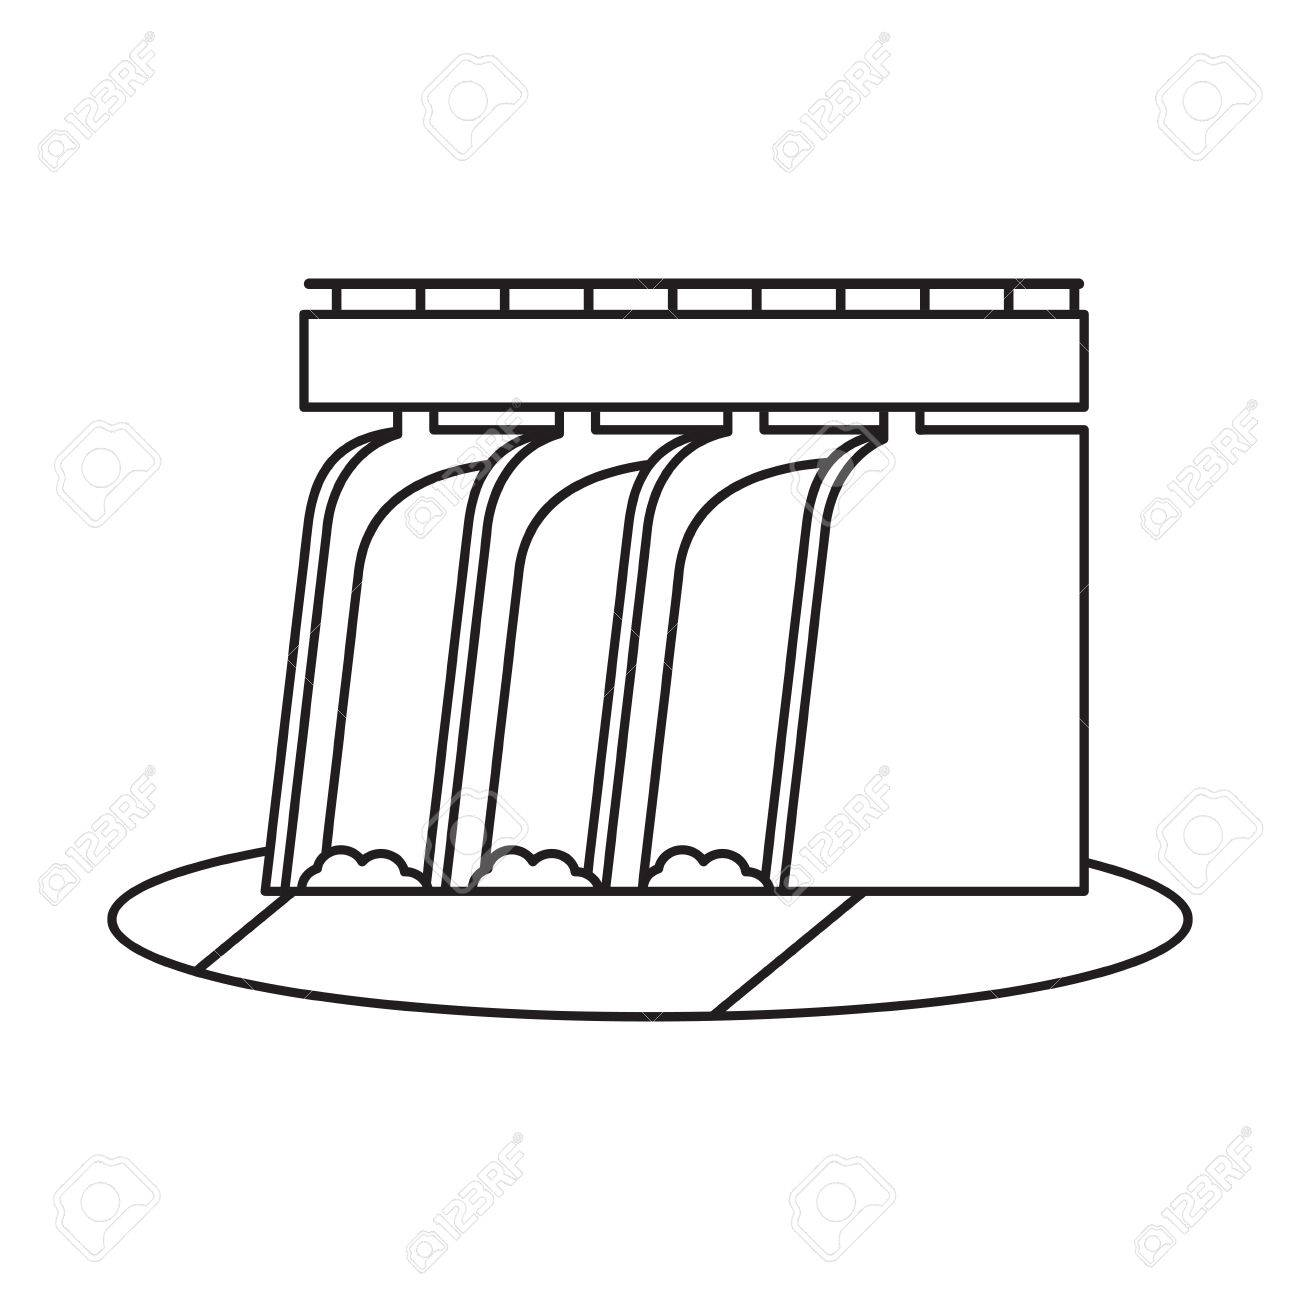 Hydroelectric station plant water dam pictograph » Clipart.